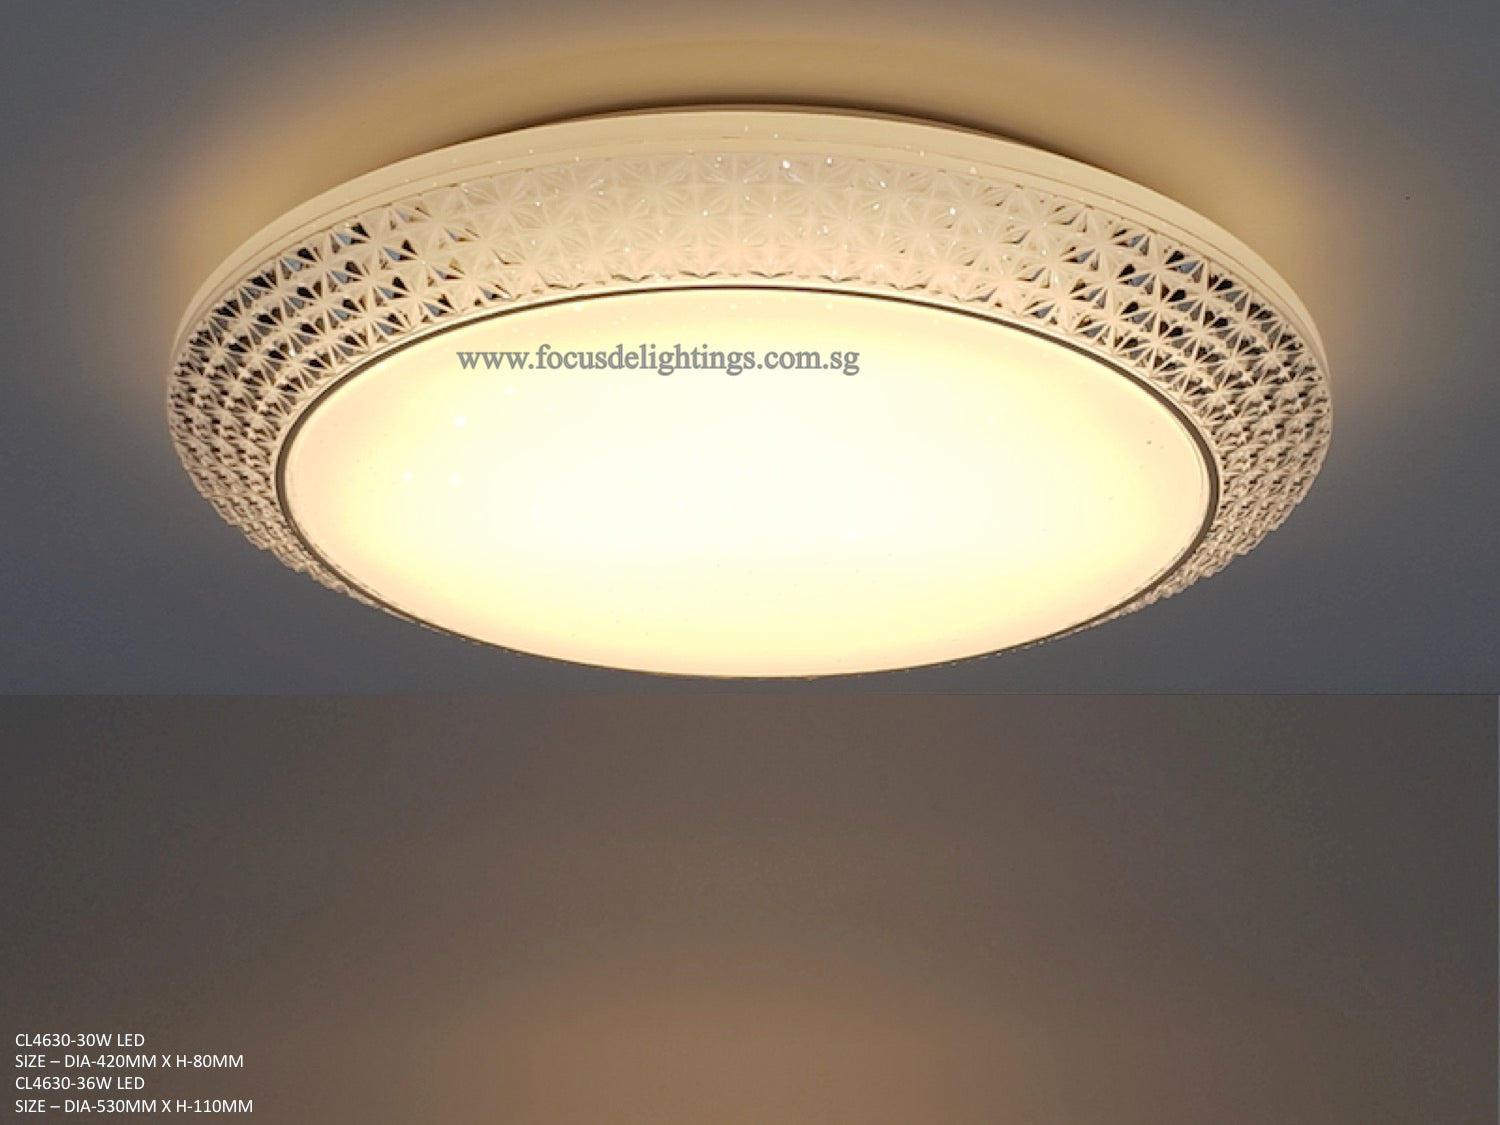 de wh lighting products boxy lamps lightings compact ceilings lamp singapore focus ceiling led white